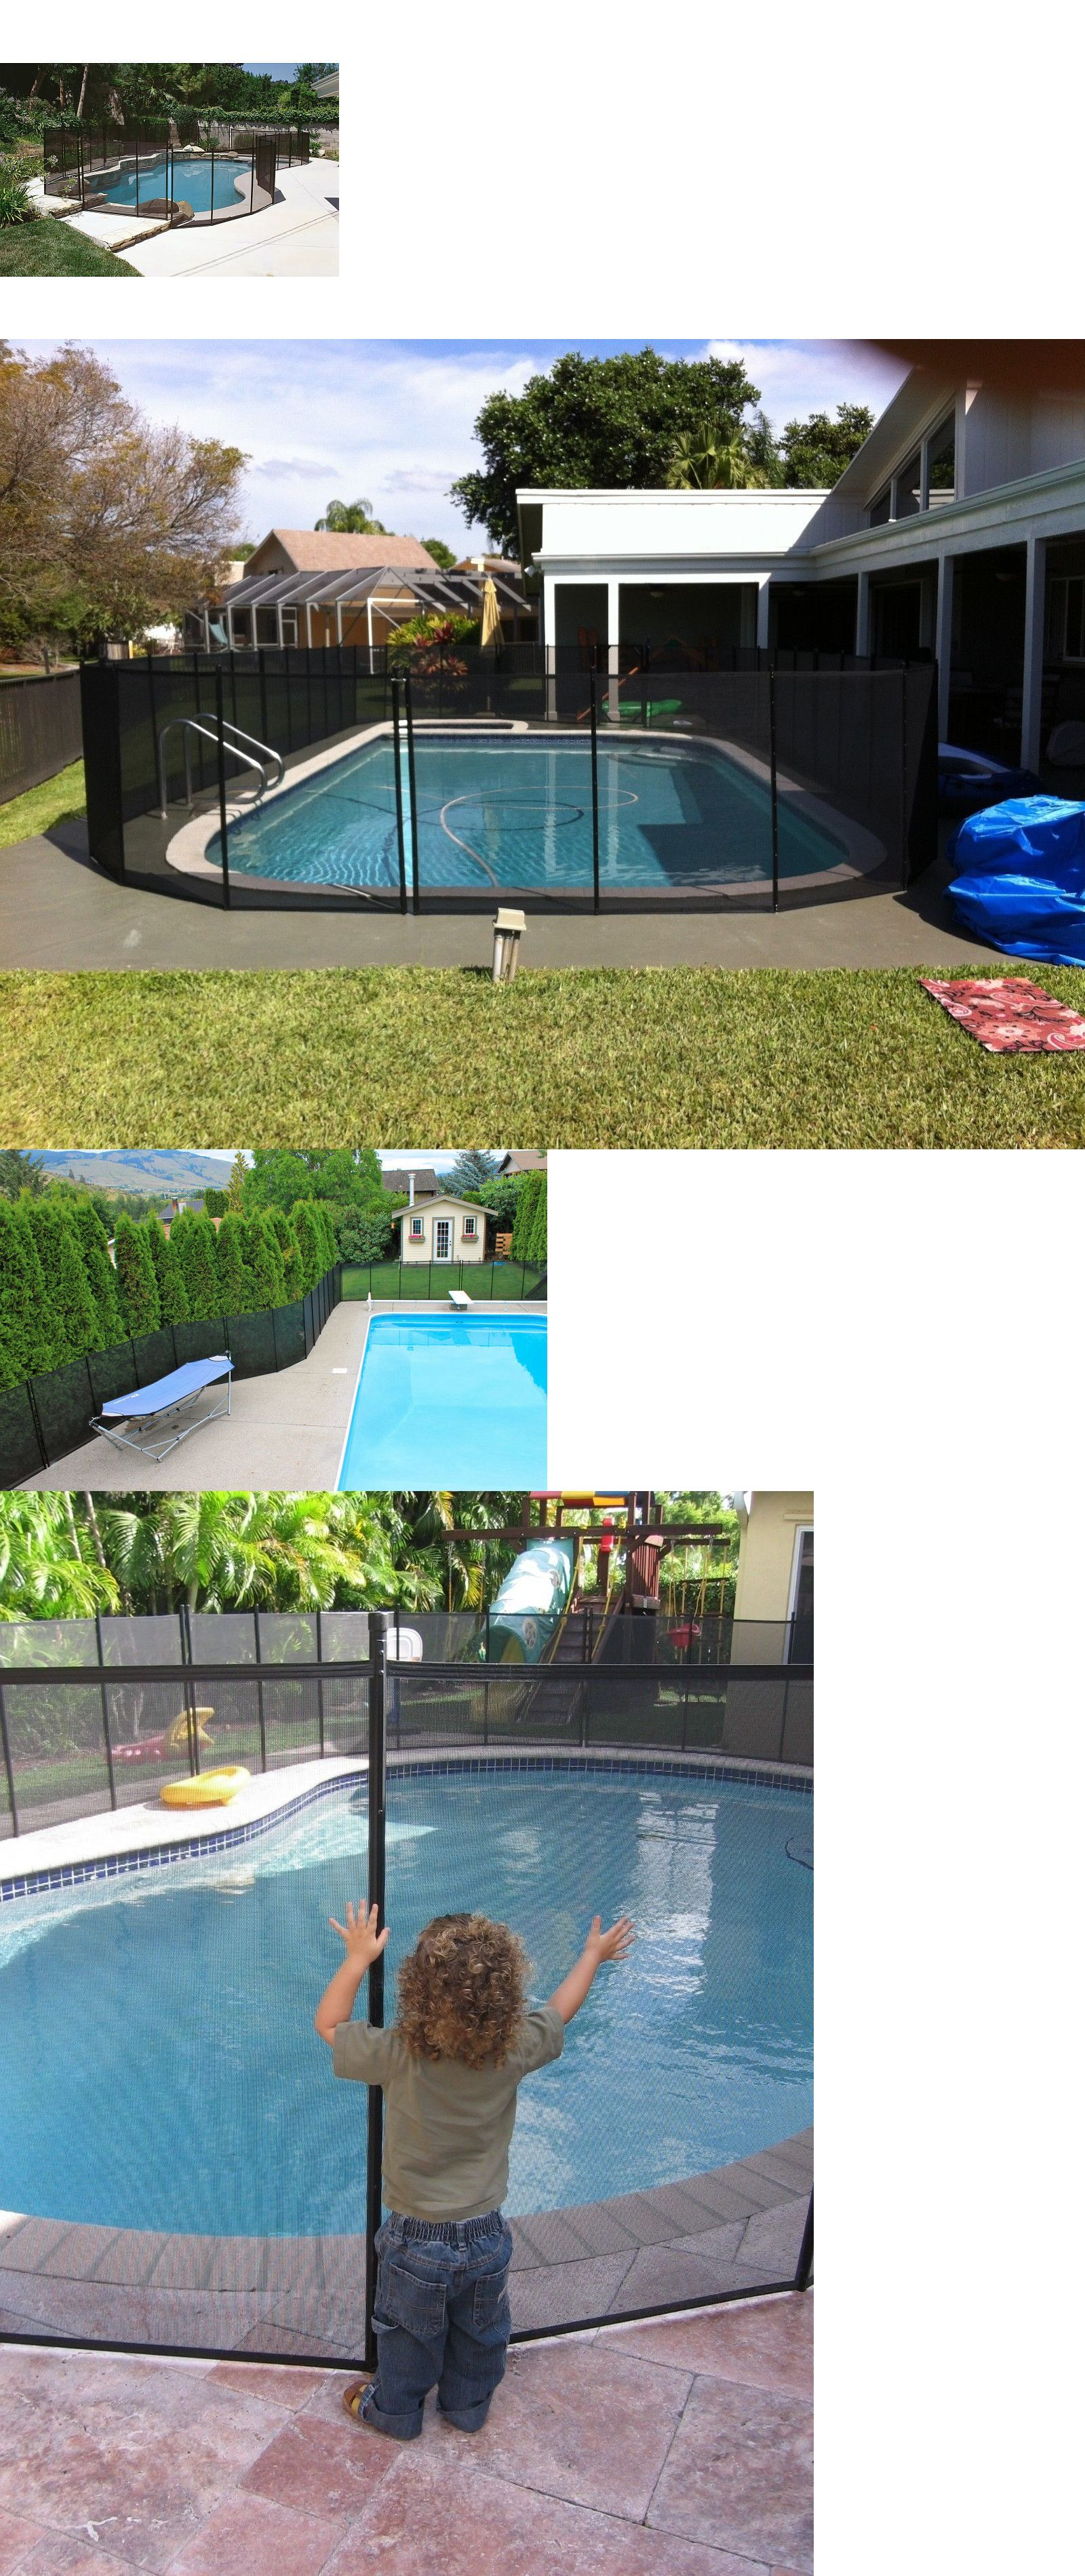 Pool Fences 167851 Water Warden In Ground Pool Safety Fence 4 X 12 Section Wwf200 Buy It Now Only 84 99 On Ebay Pool Safety Fence Pool Pool Safety